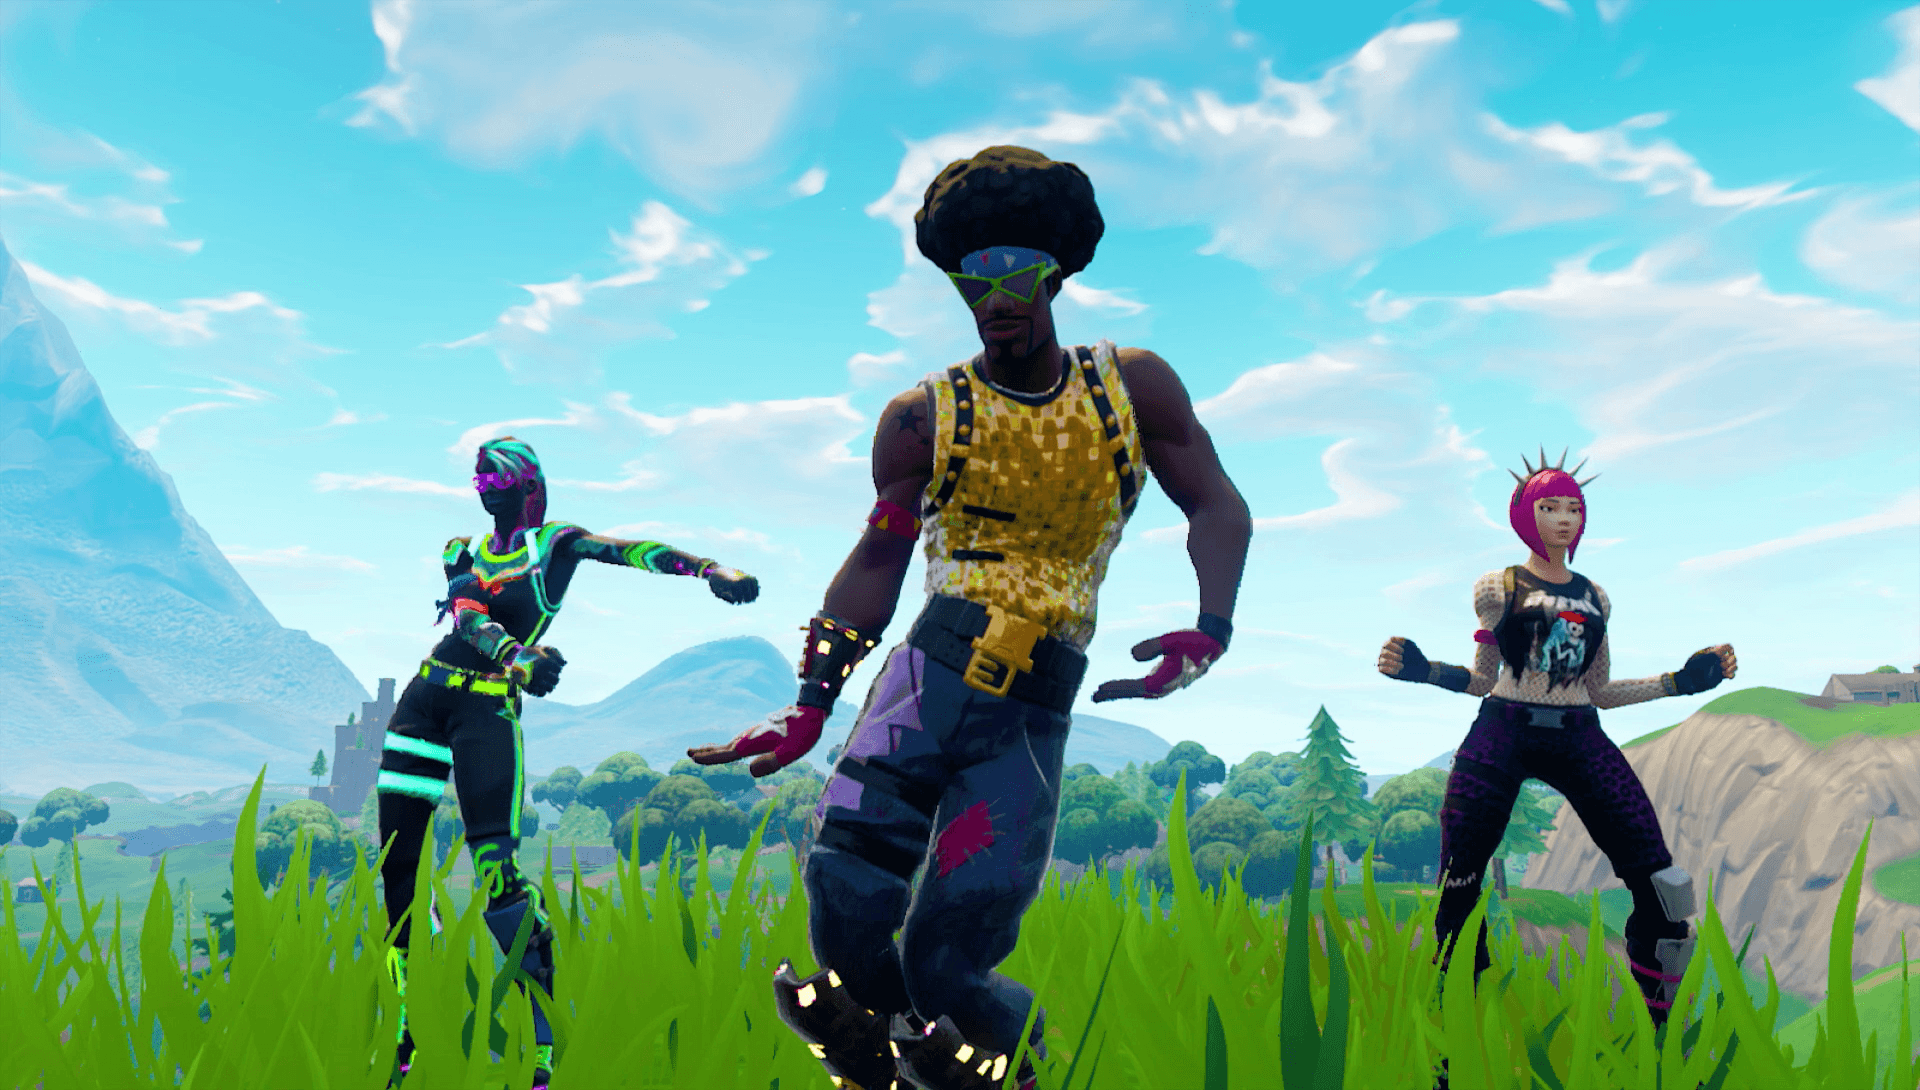 Servers Cause Issues For Fortnite Summer Skirmish Series Event